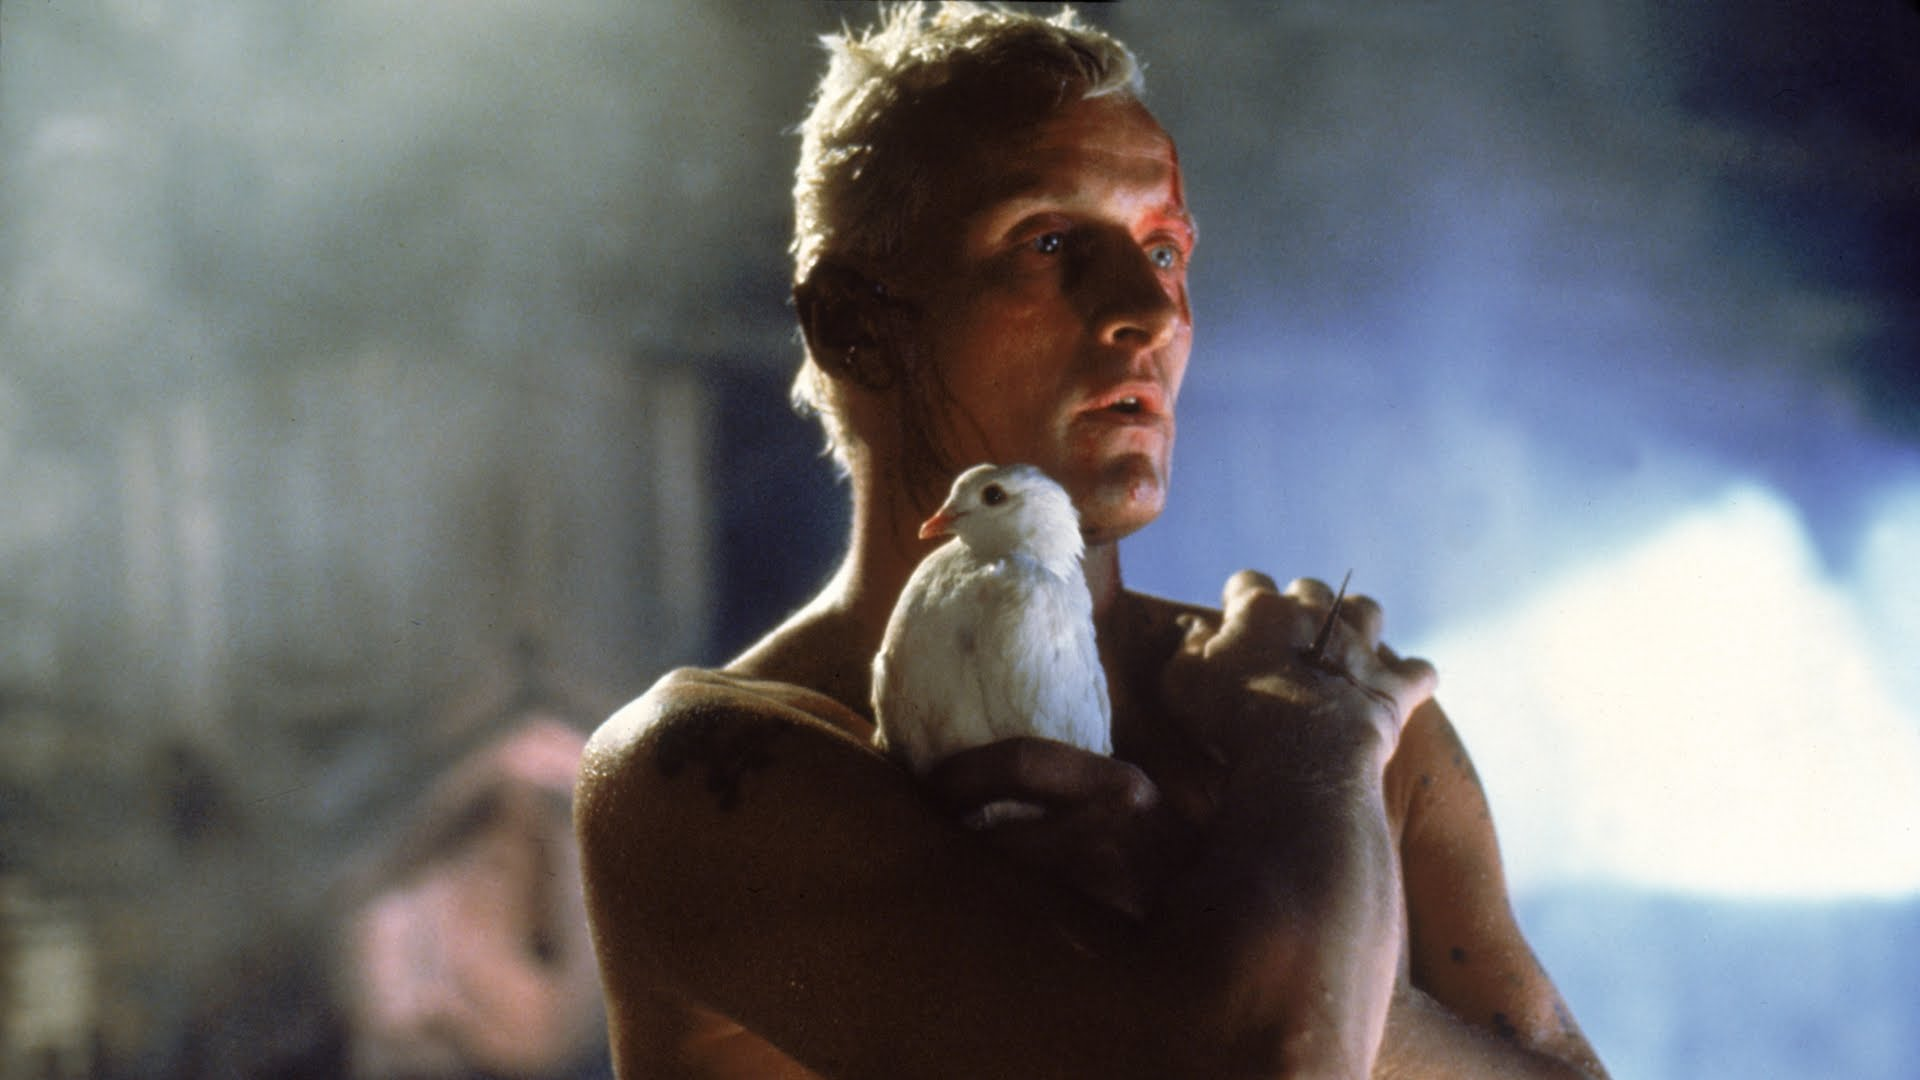 Rutger Hauer as the replicant Roy Batty in Blade Runner (1982)